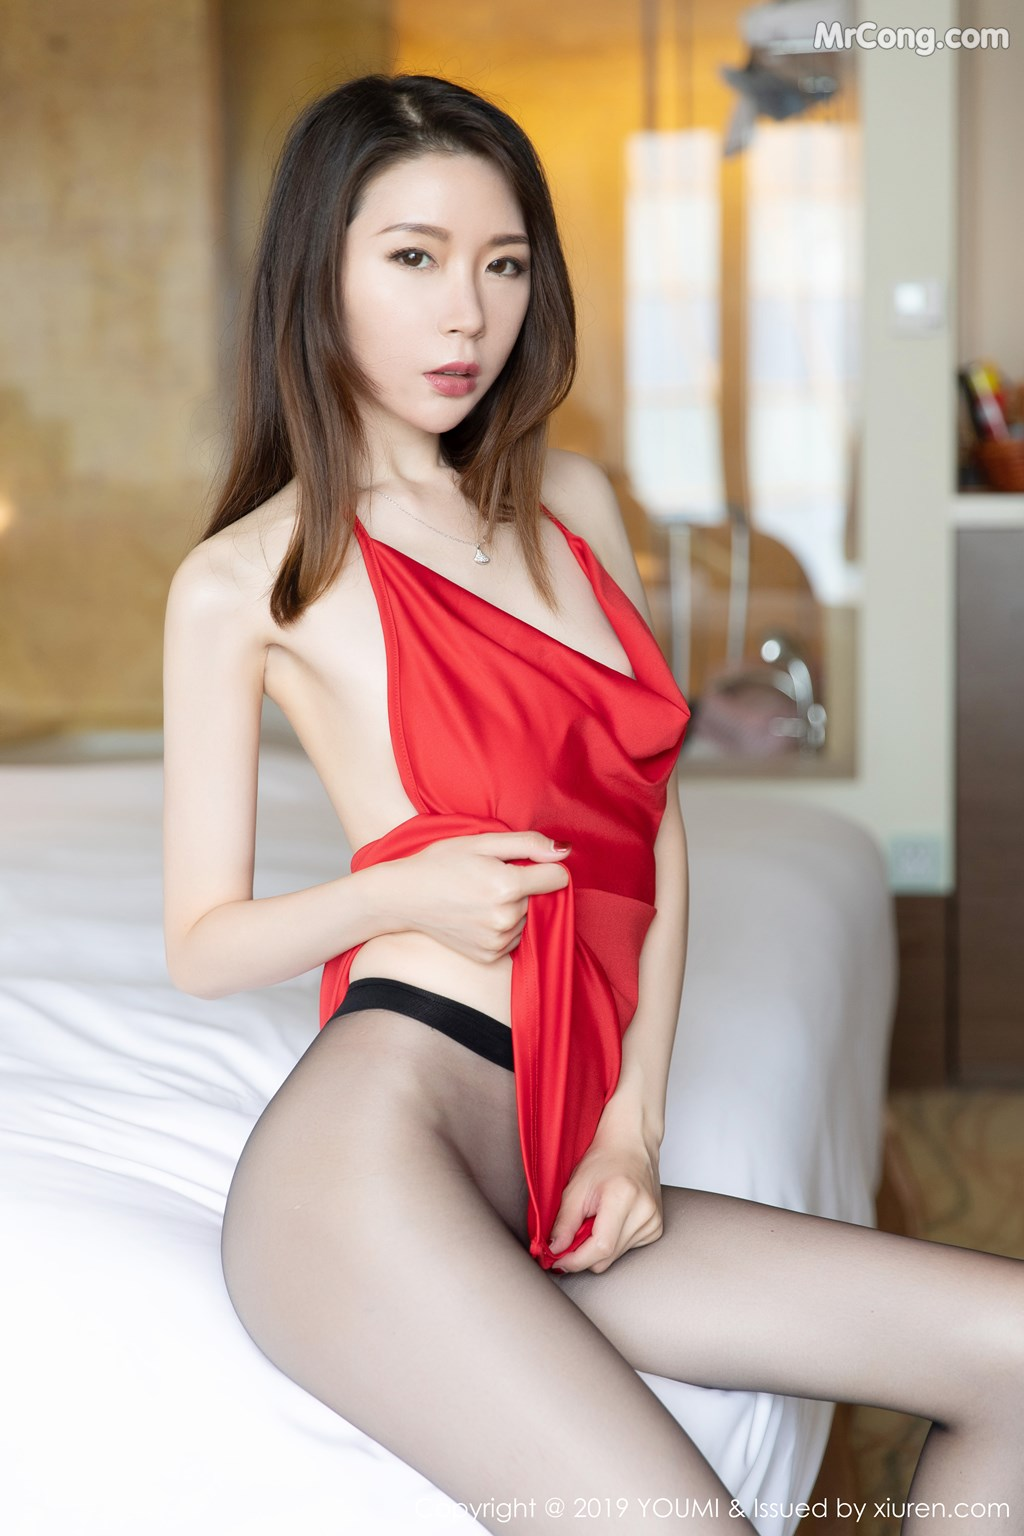 Image YouMi-Vol.367-Meng-Xin-Yue-MrCong.com-008 in post YouMi Vol.367: Meng Xin Yue (梦心月) (57 ảnh)